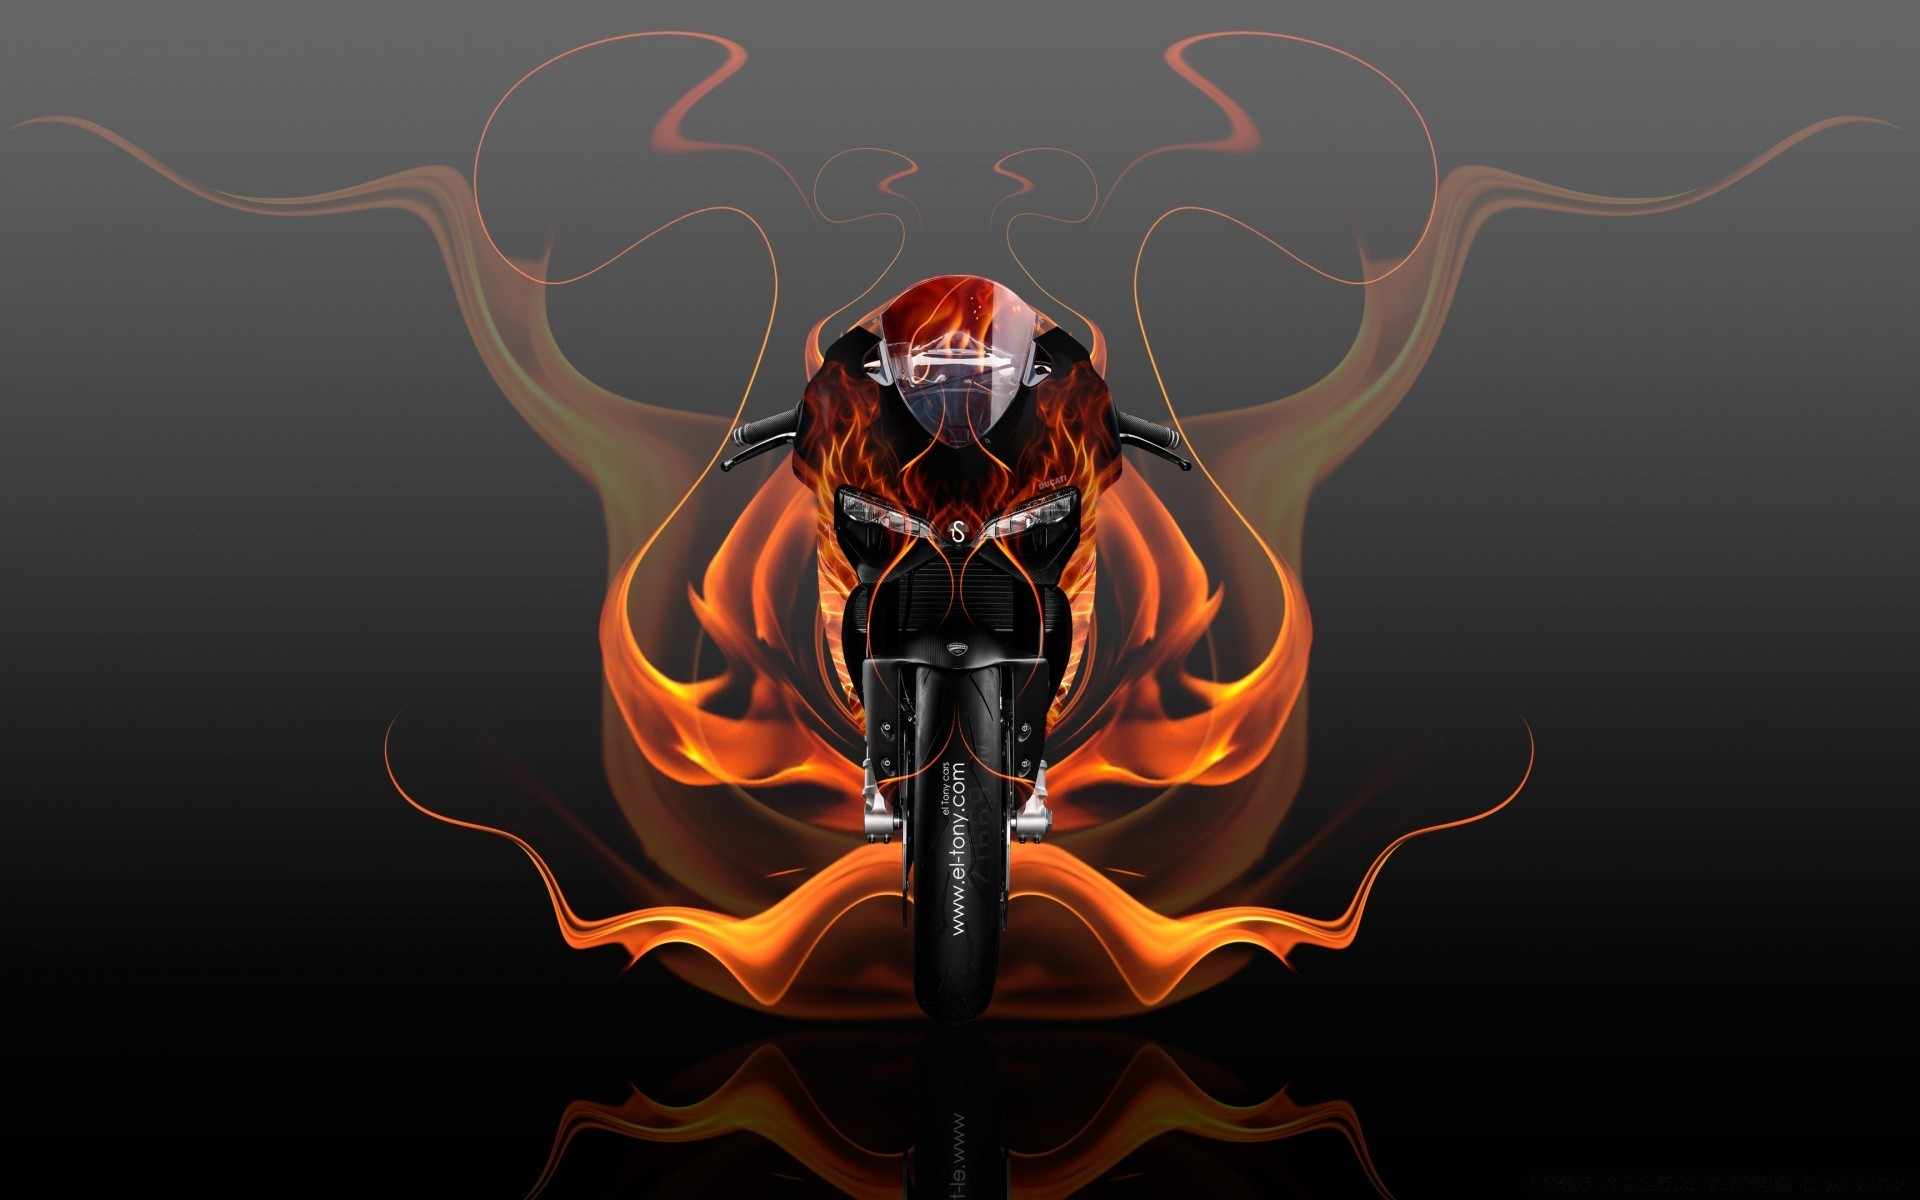 Ducati 1199 Fire Abstract Bike 2015 Design By Tony Kokhan IPhone Wallpapers For Free